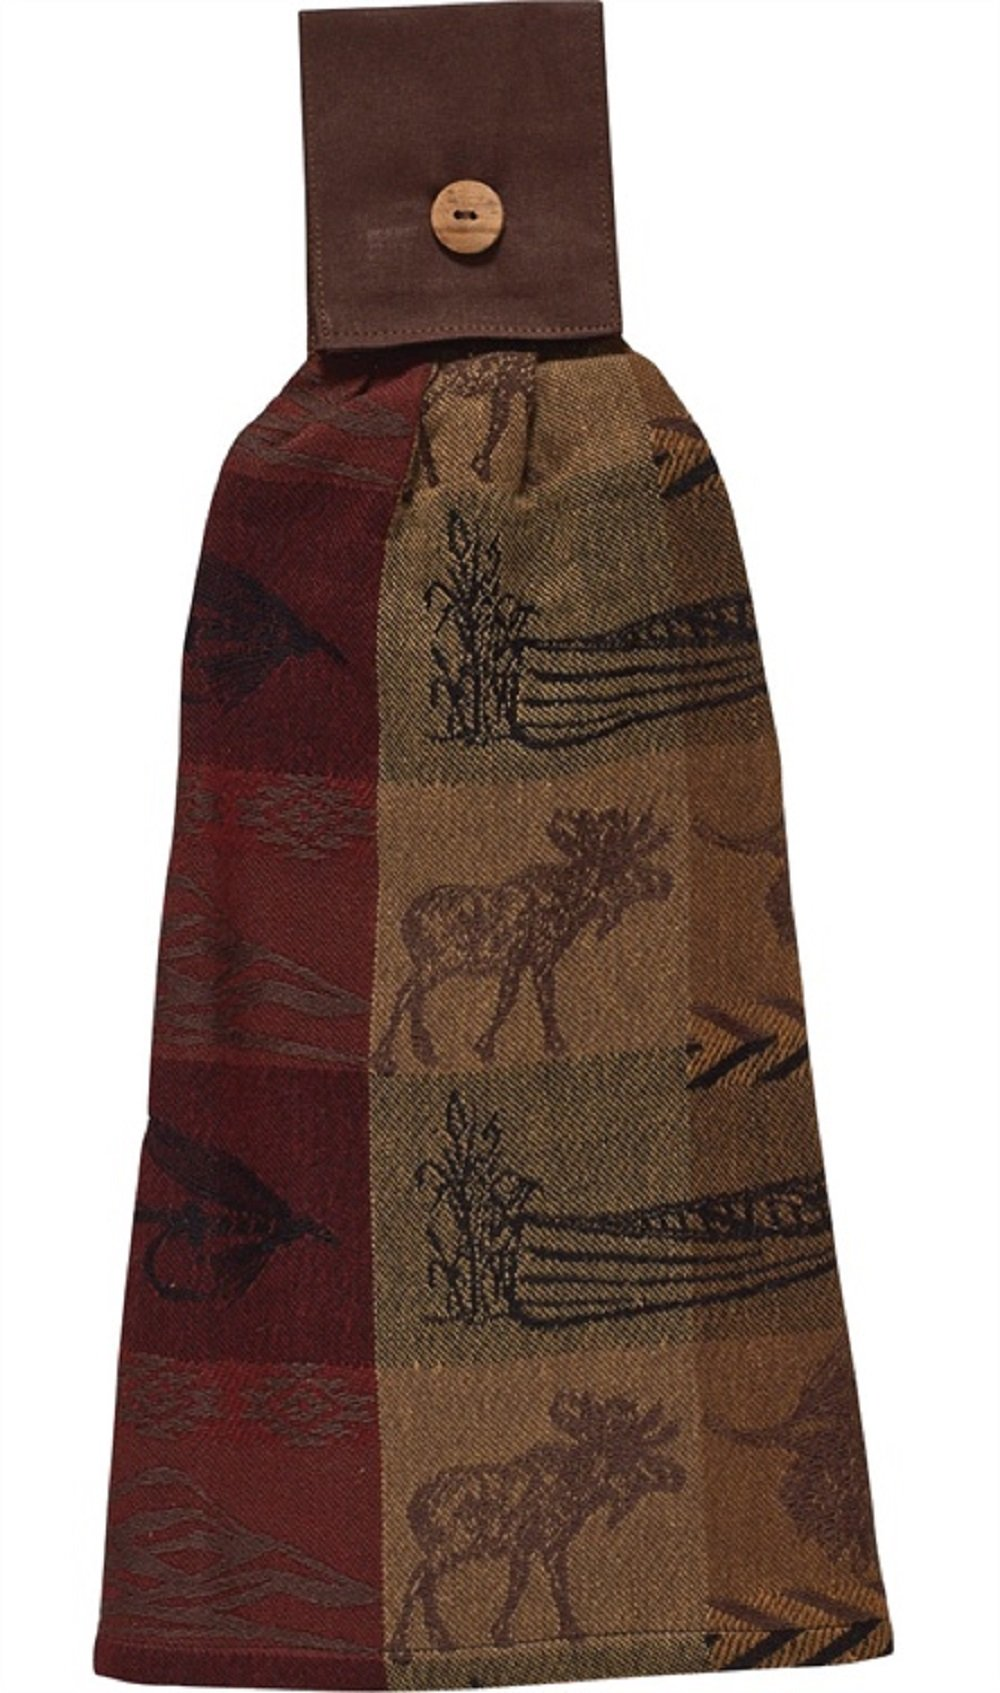 Park Designs High Country Cotton Jacquard Hand Towels